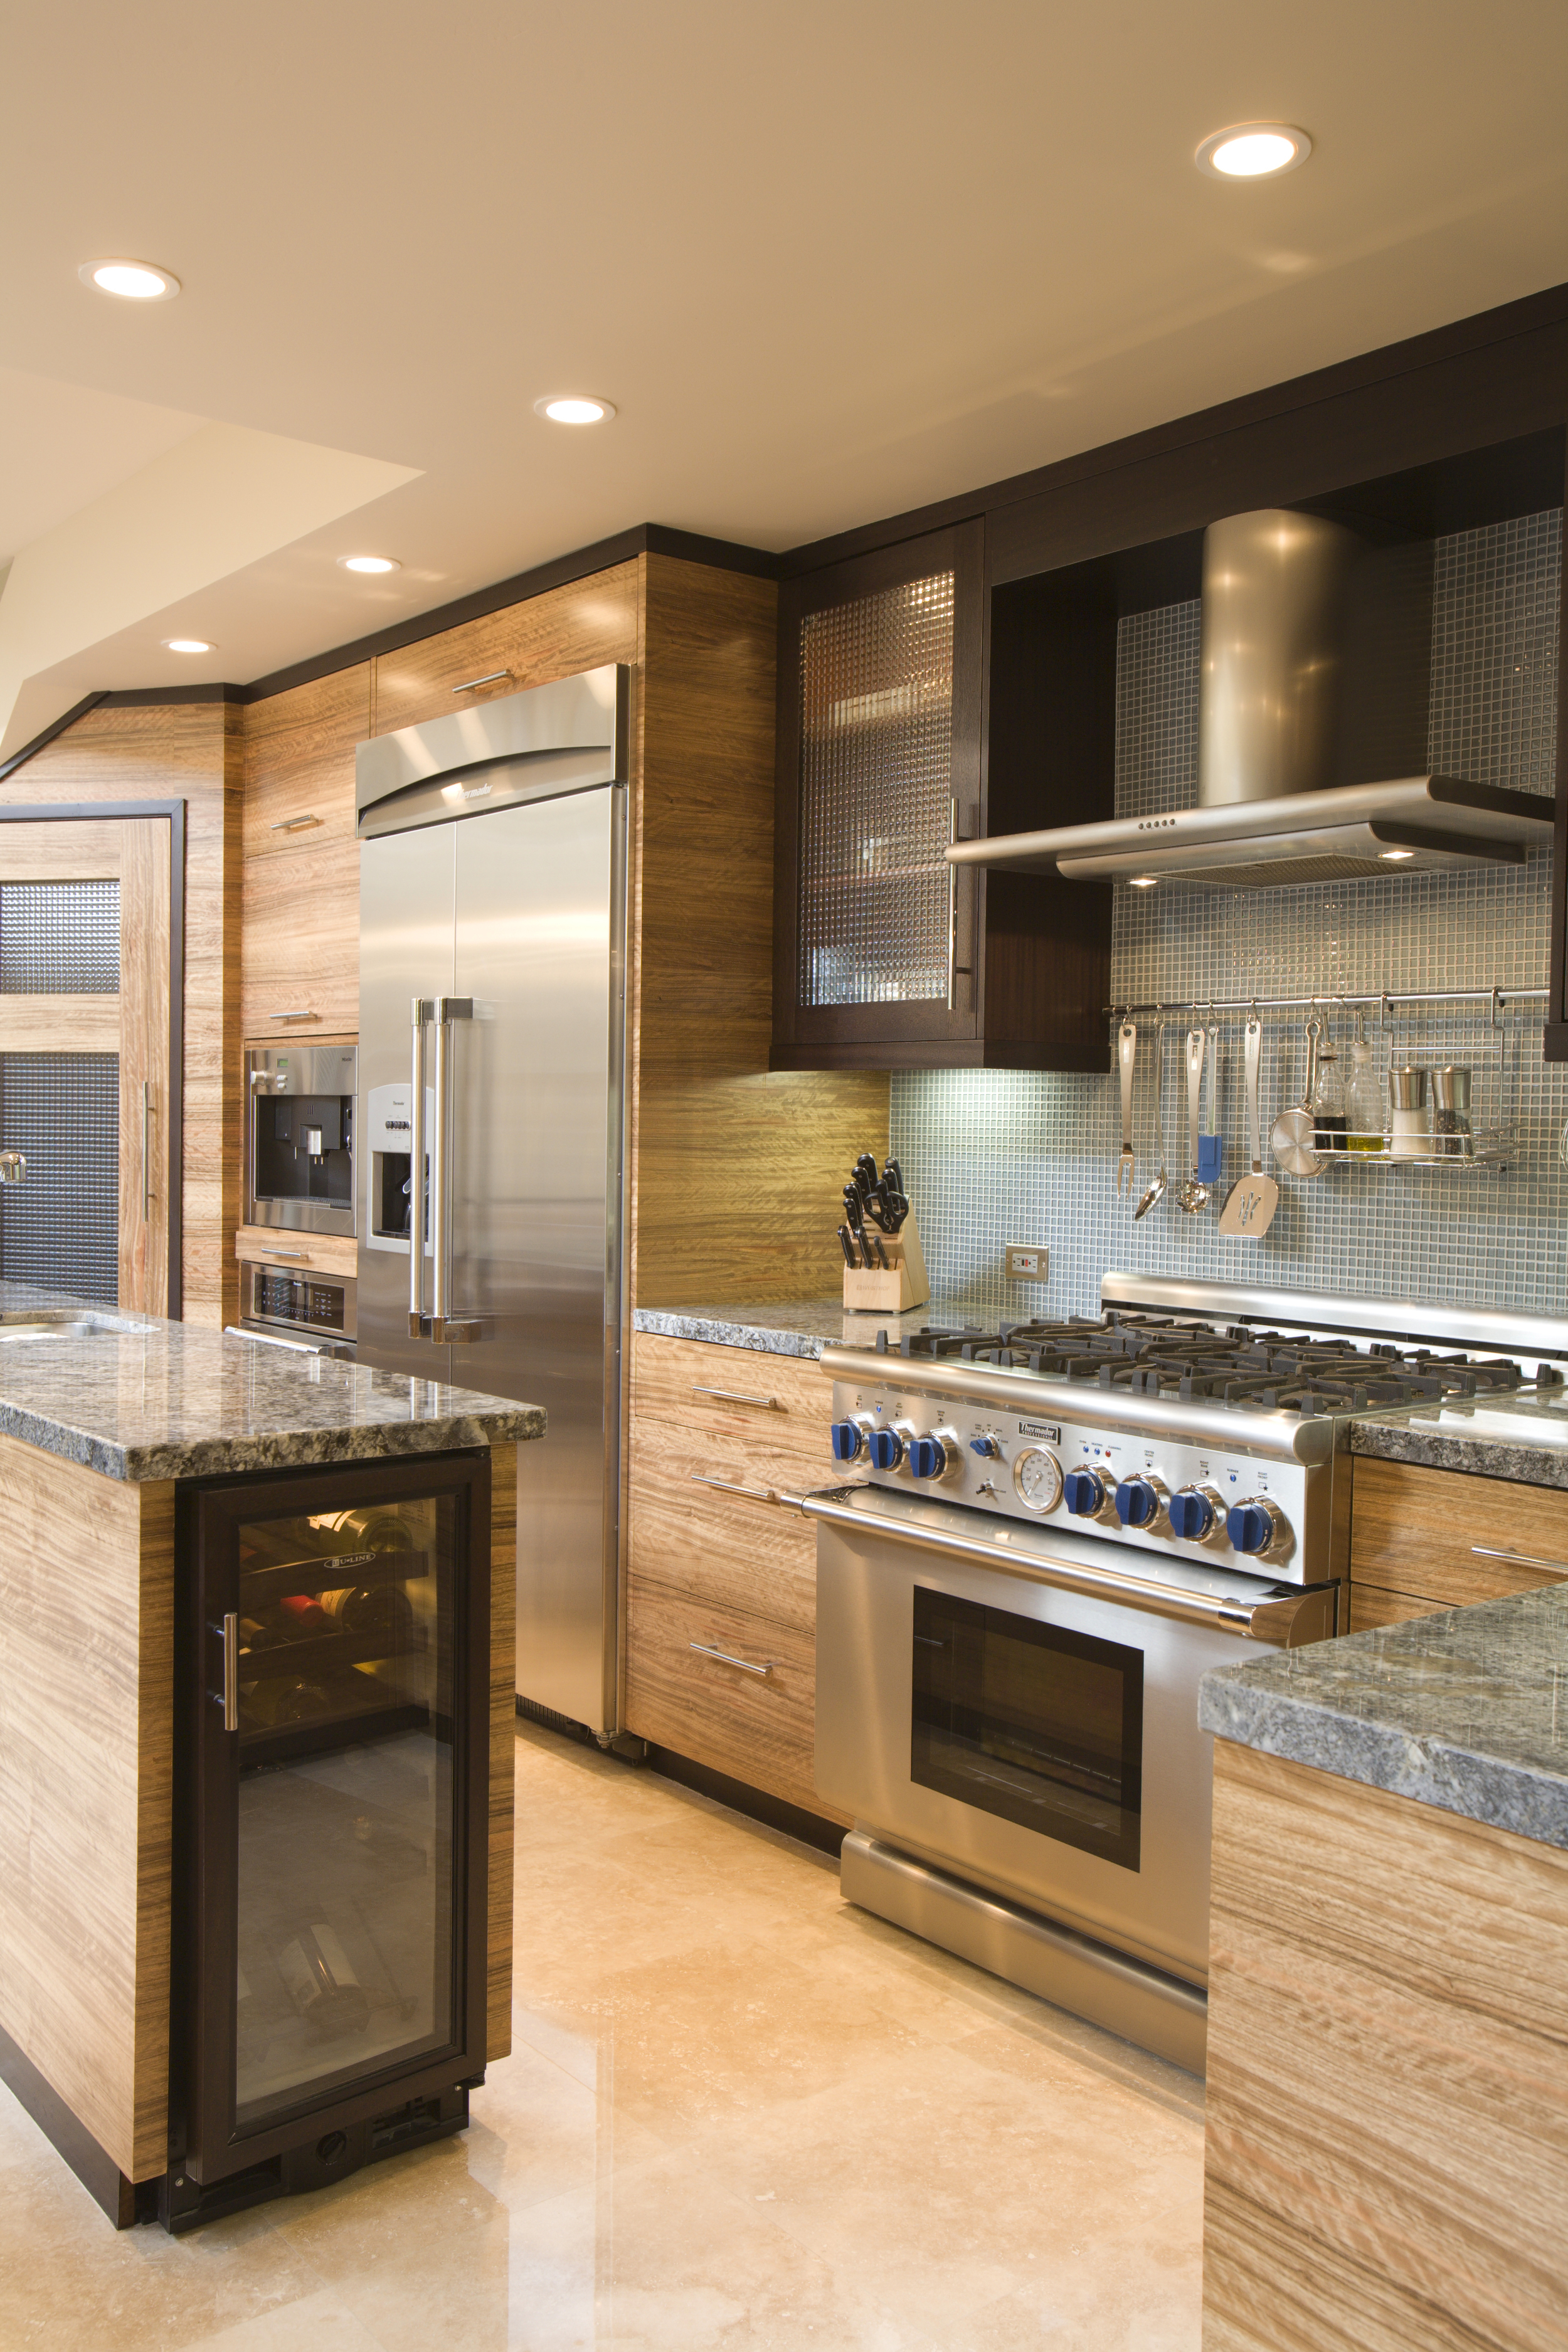 Kitchen features cabinetry of wenge and pal deo.